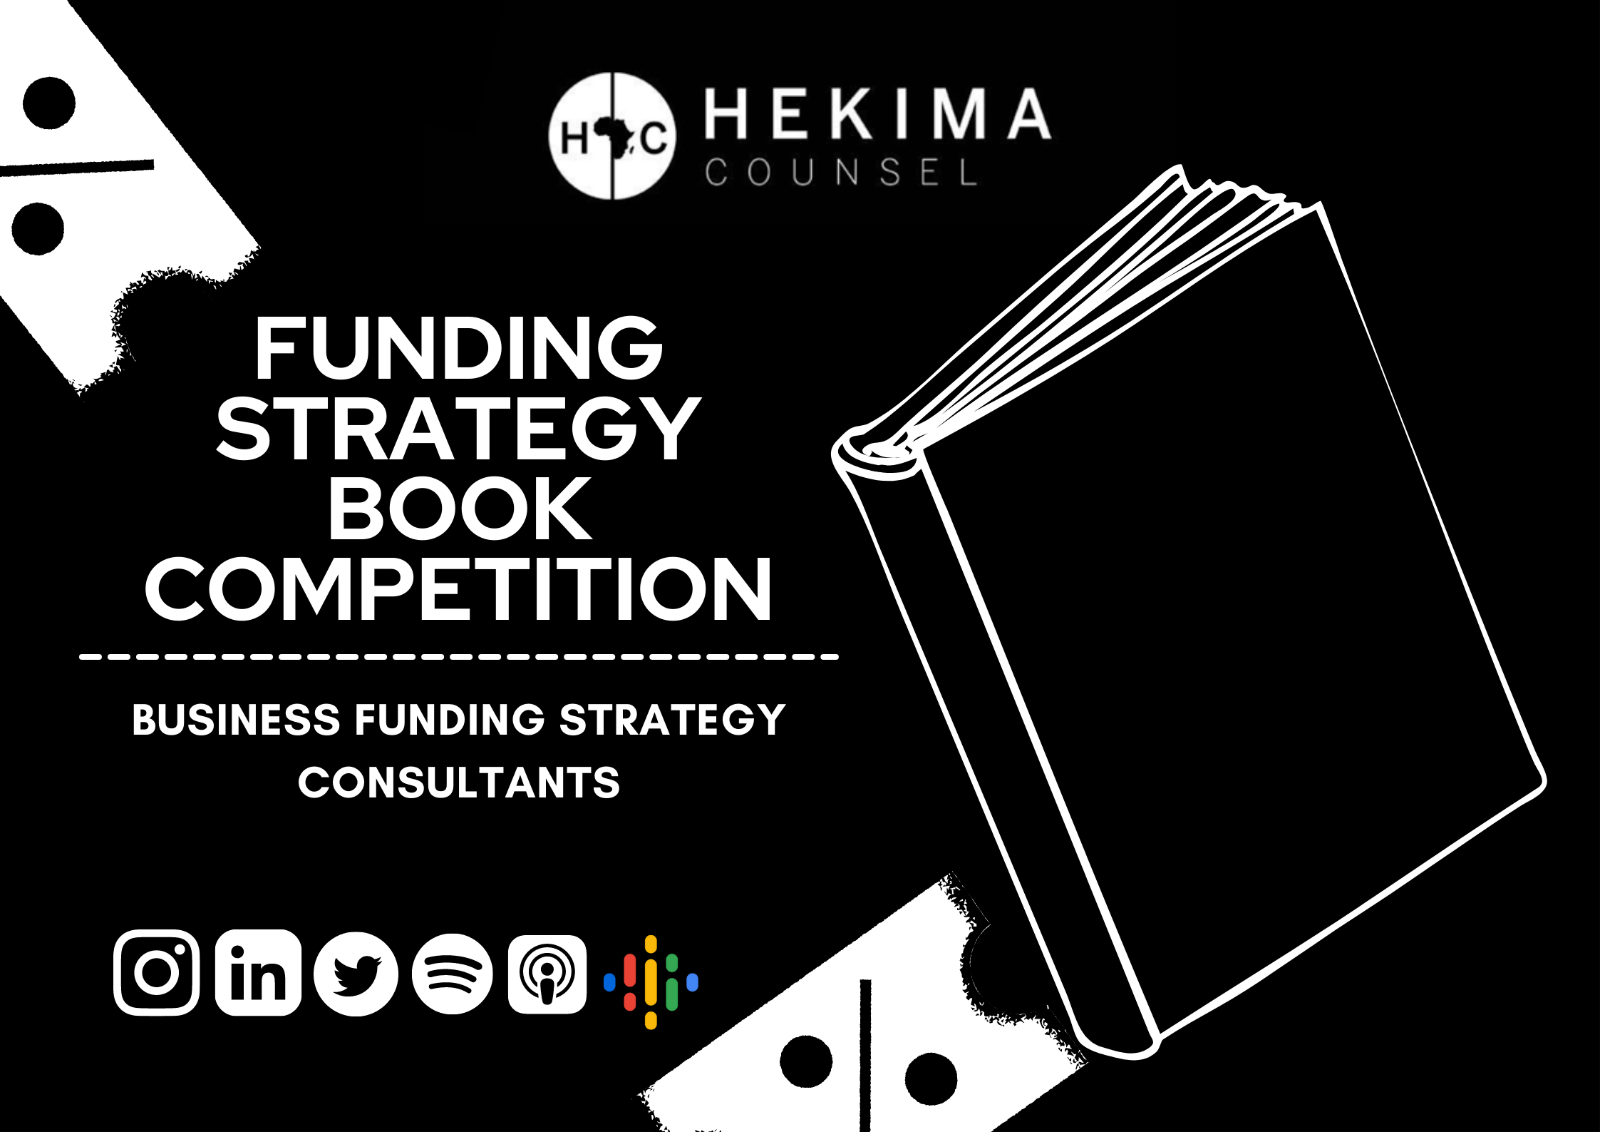 [Book Competition] Funding Strategy